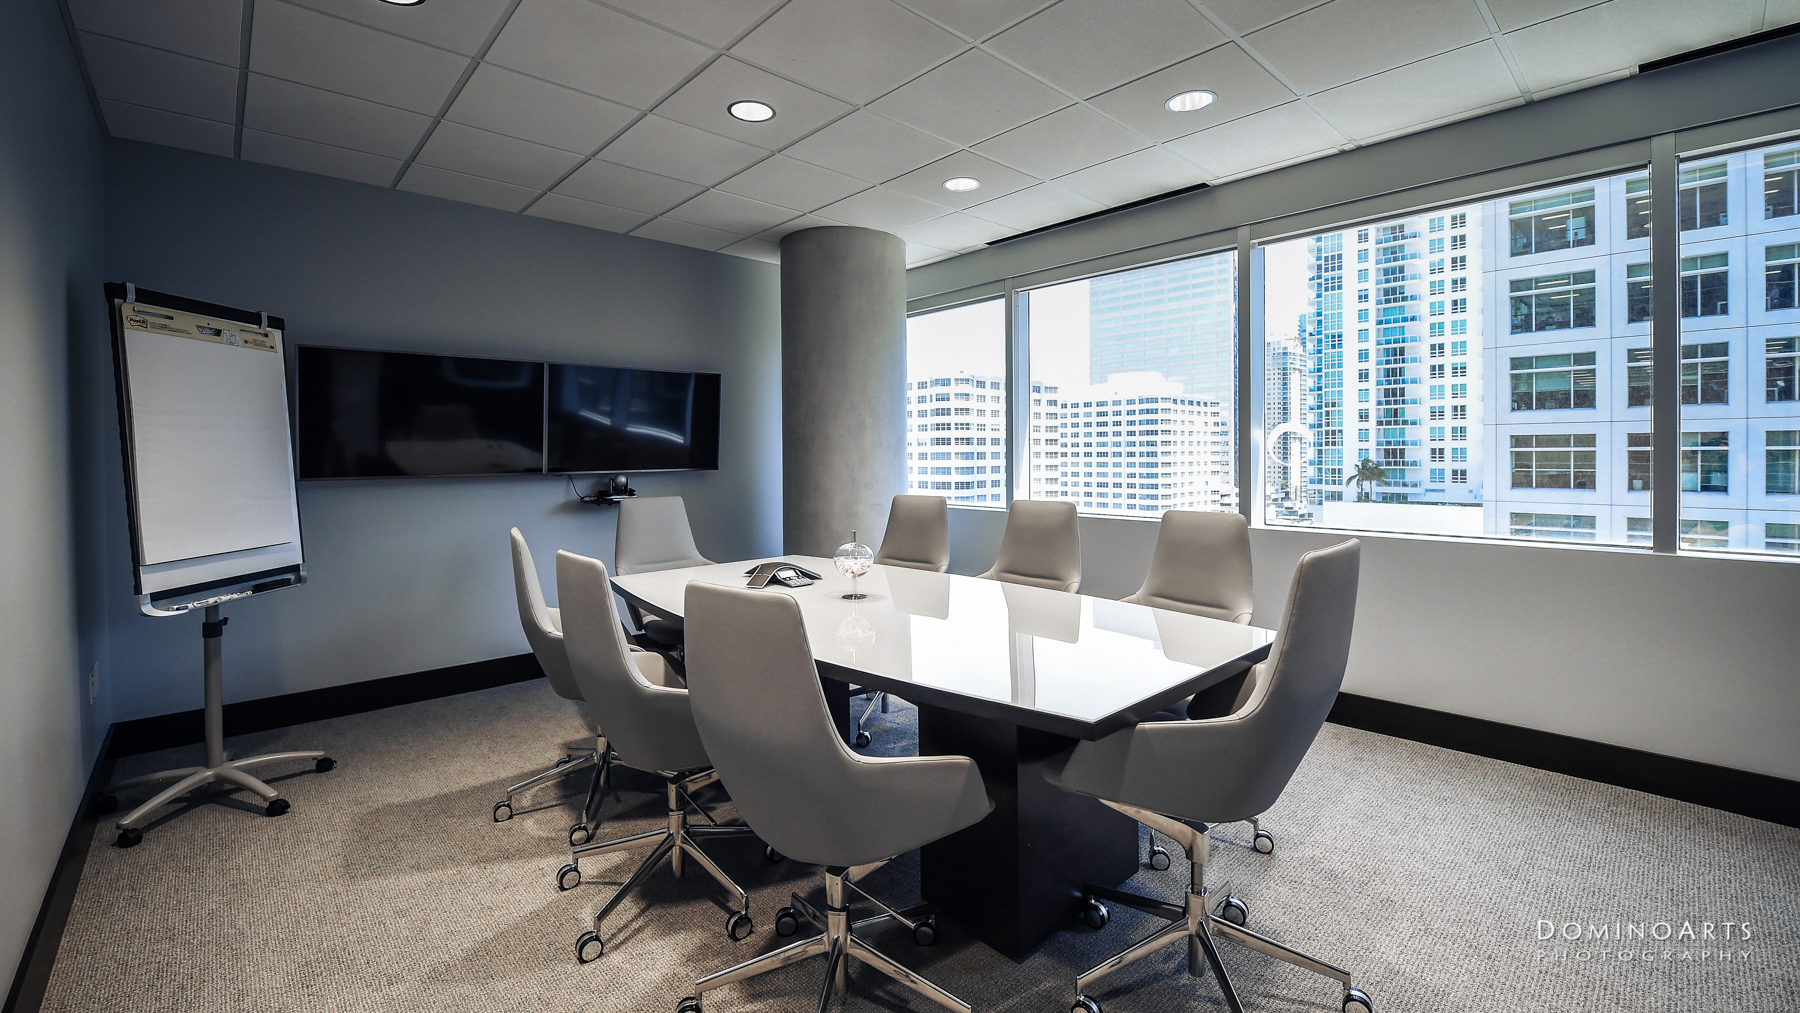 interior office architectural corporate photography in Miami by Domino Arts